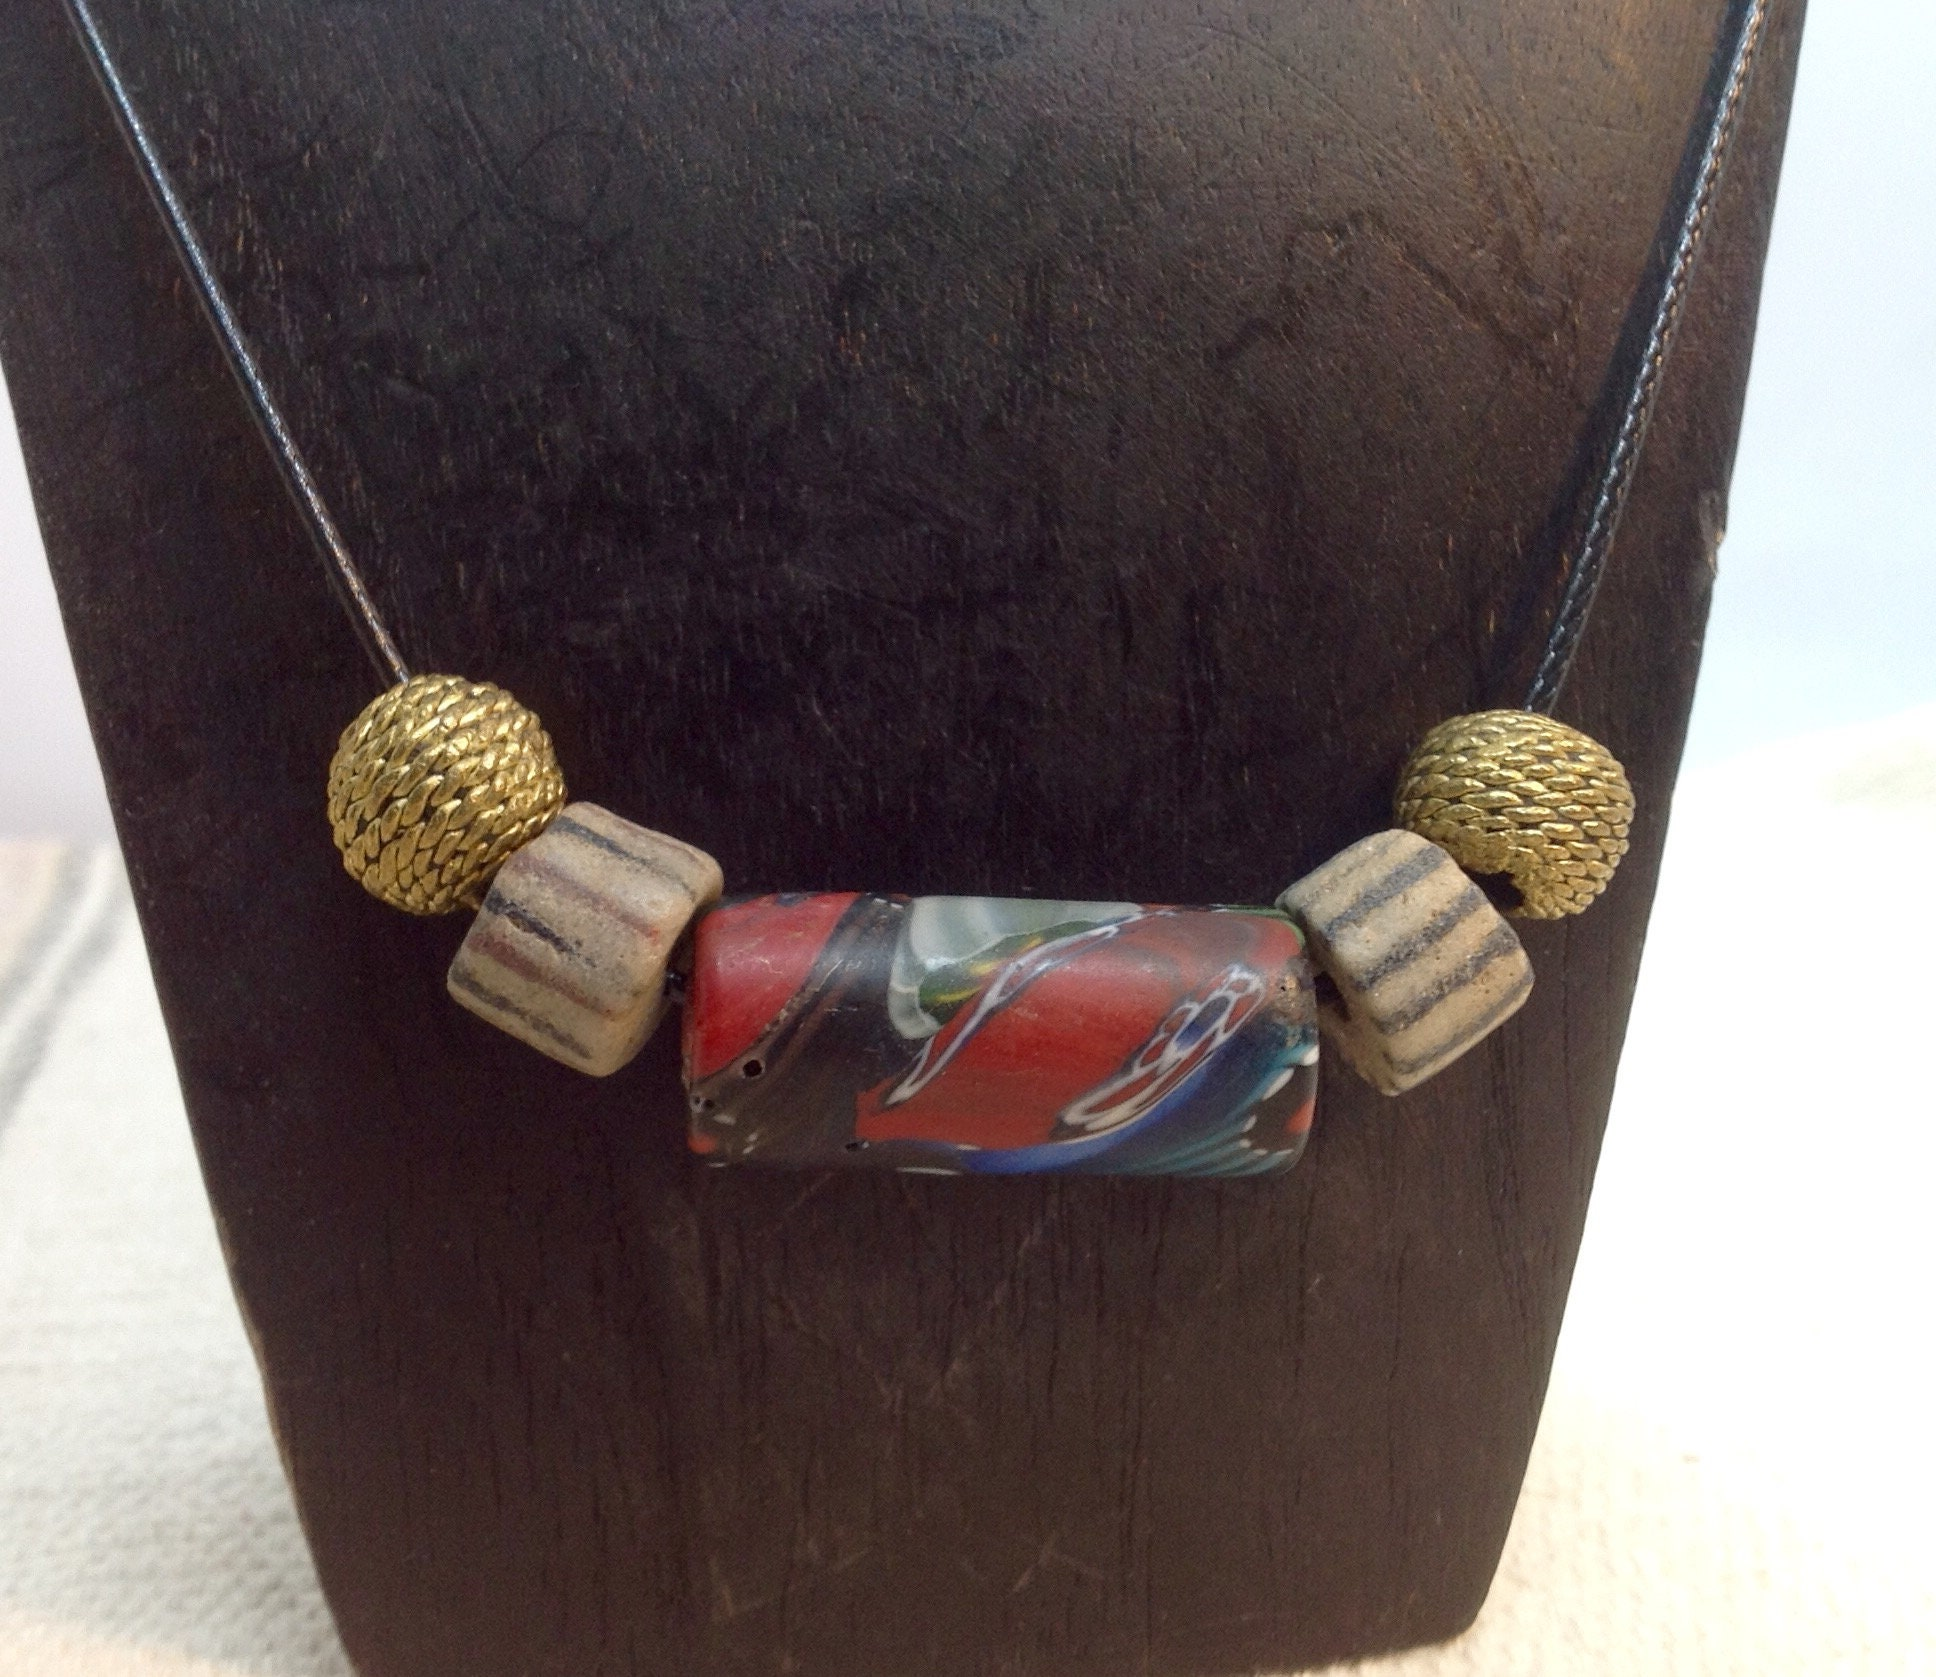 African and Nepalese beads on a cord necklace for men or women